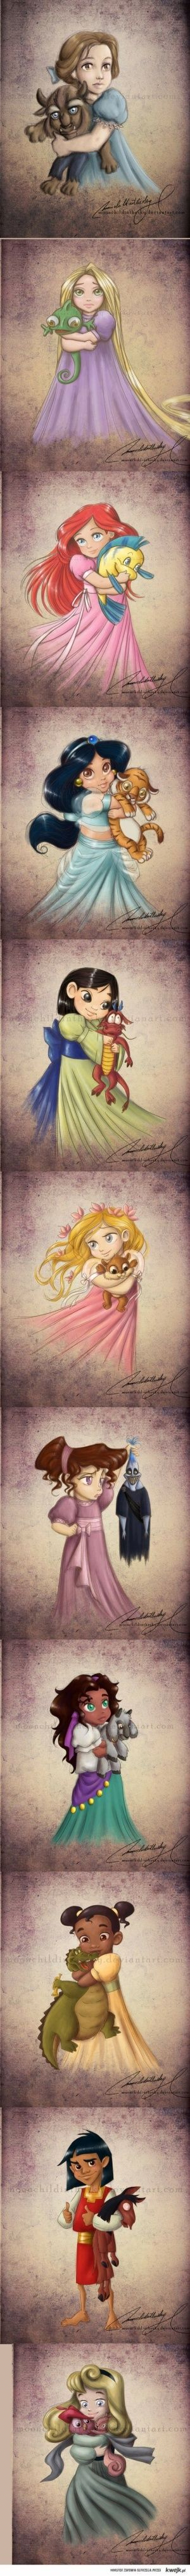 The best images about disney princesses on pinterest best